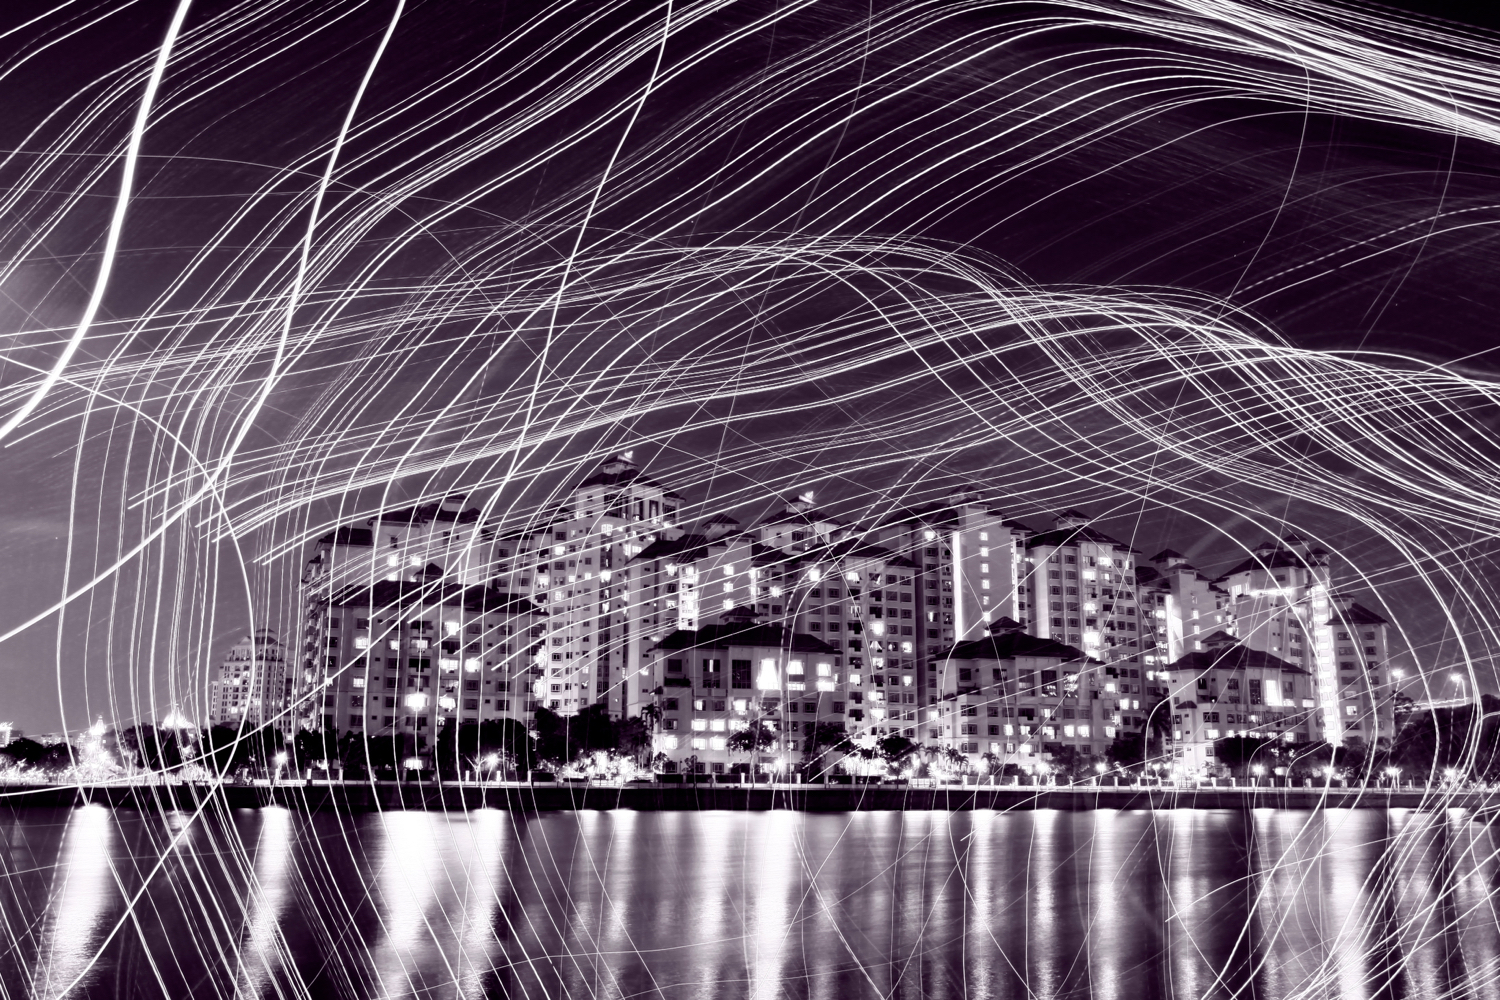 Image: Other movements can be used for kinetic light painting. The risk is the photo becomes too bus...